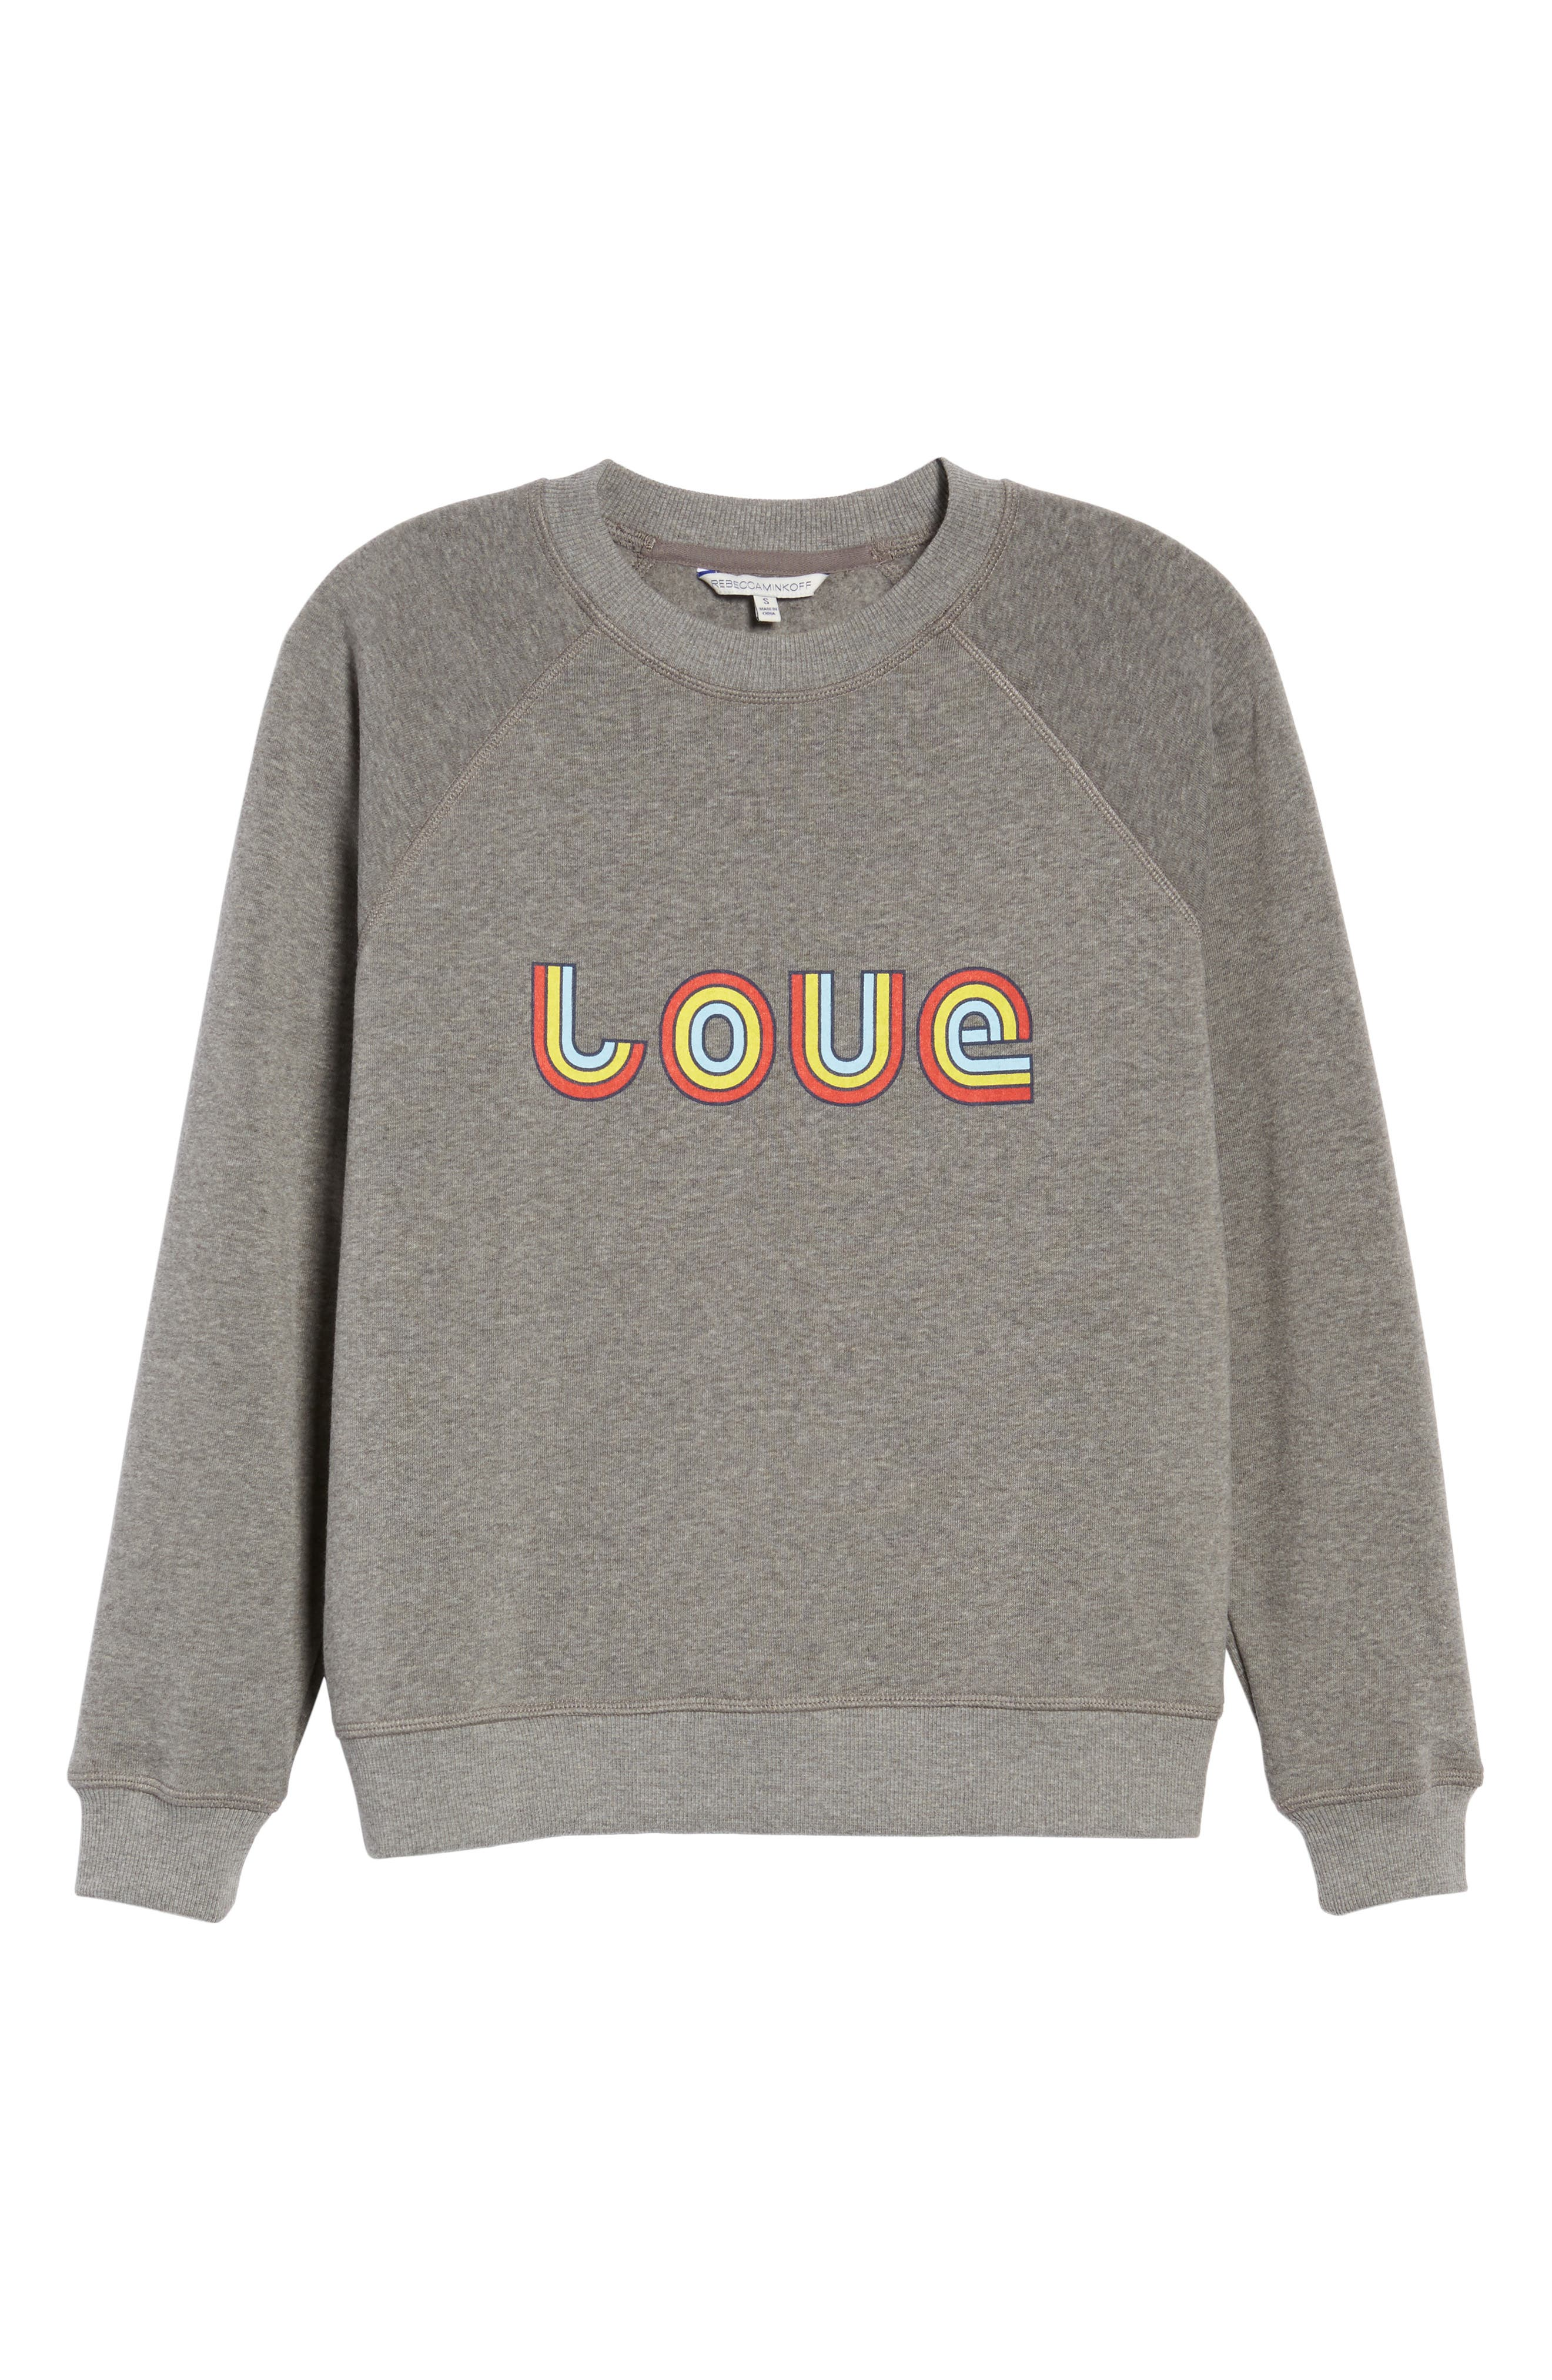 Love Sweatshirt,                             Alternate thumbnail 6, color,                             030